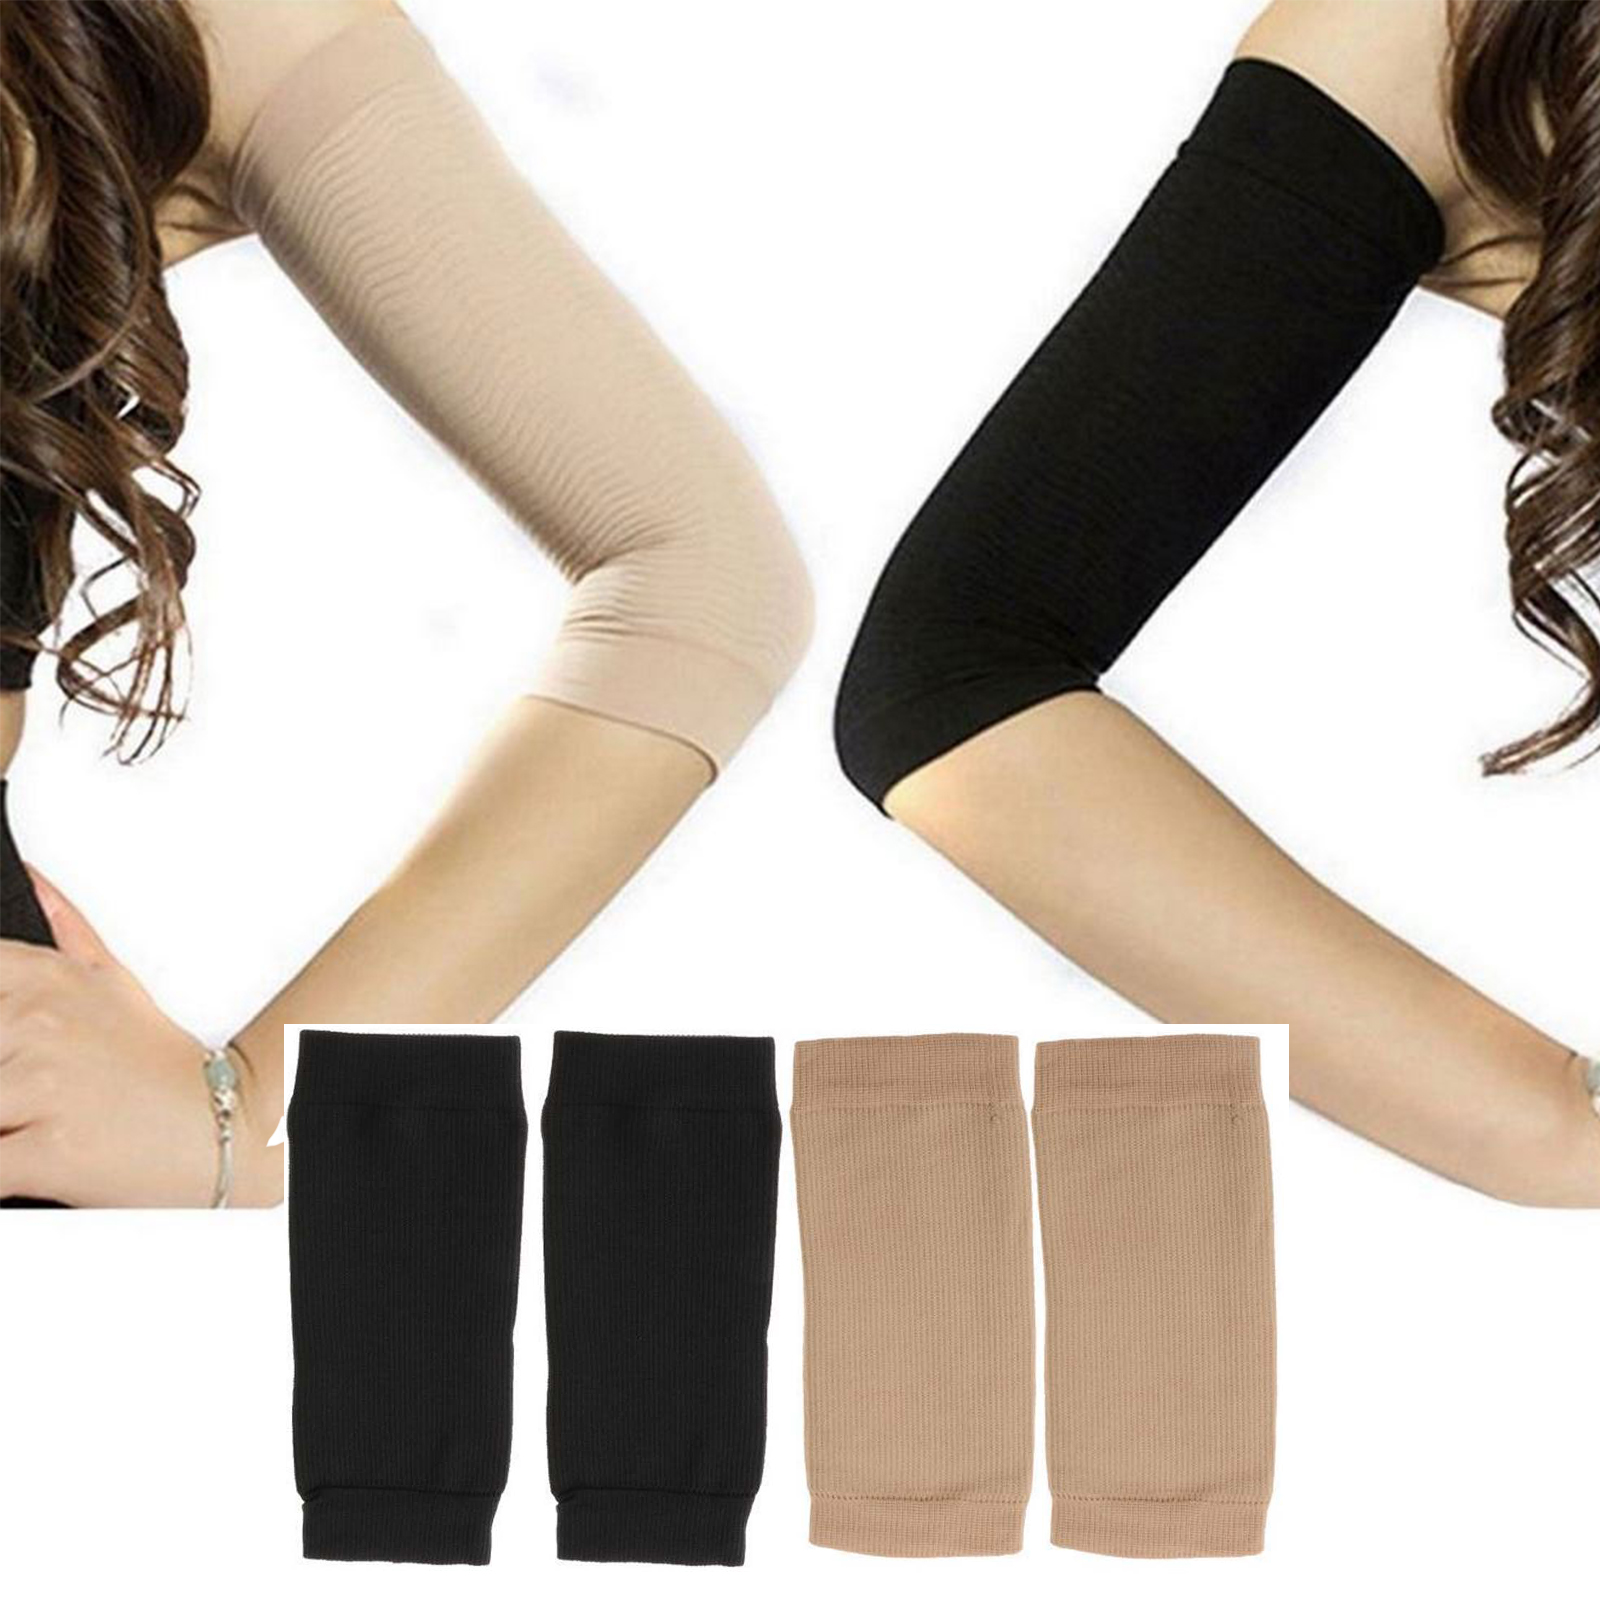 120f3172d1842 Slimming compression arms sleeve shaping arm shaper upper arm sleeve  supports jpg 1600x1600 Upper arm compression